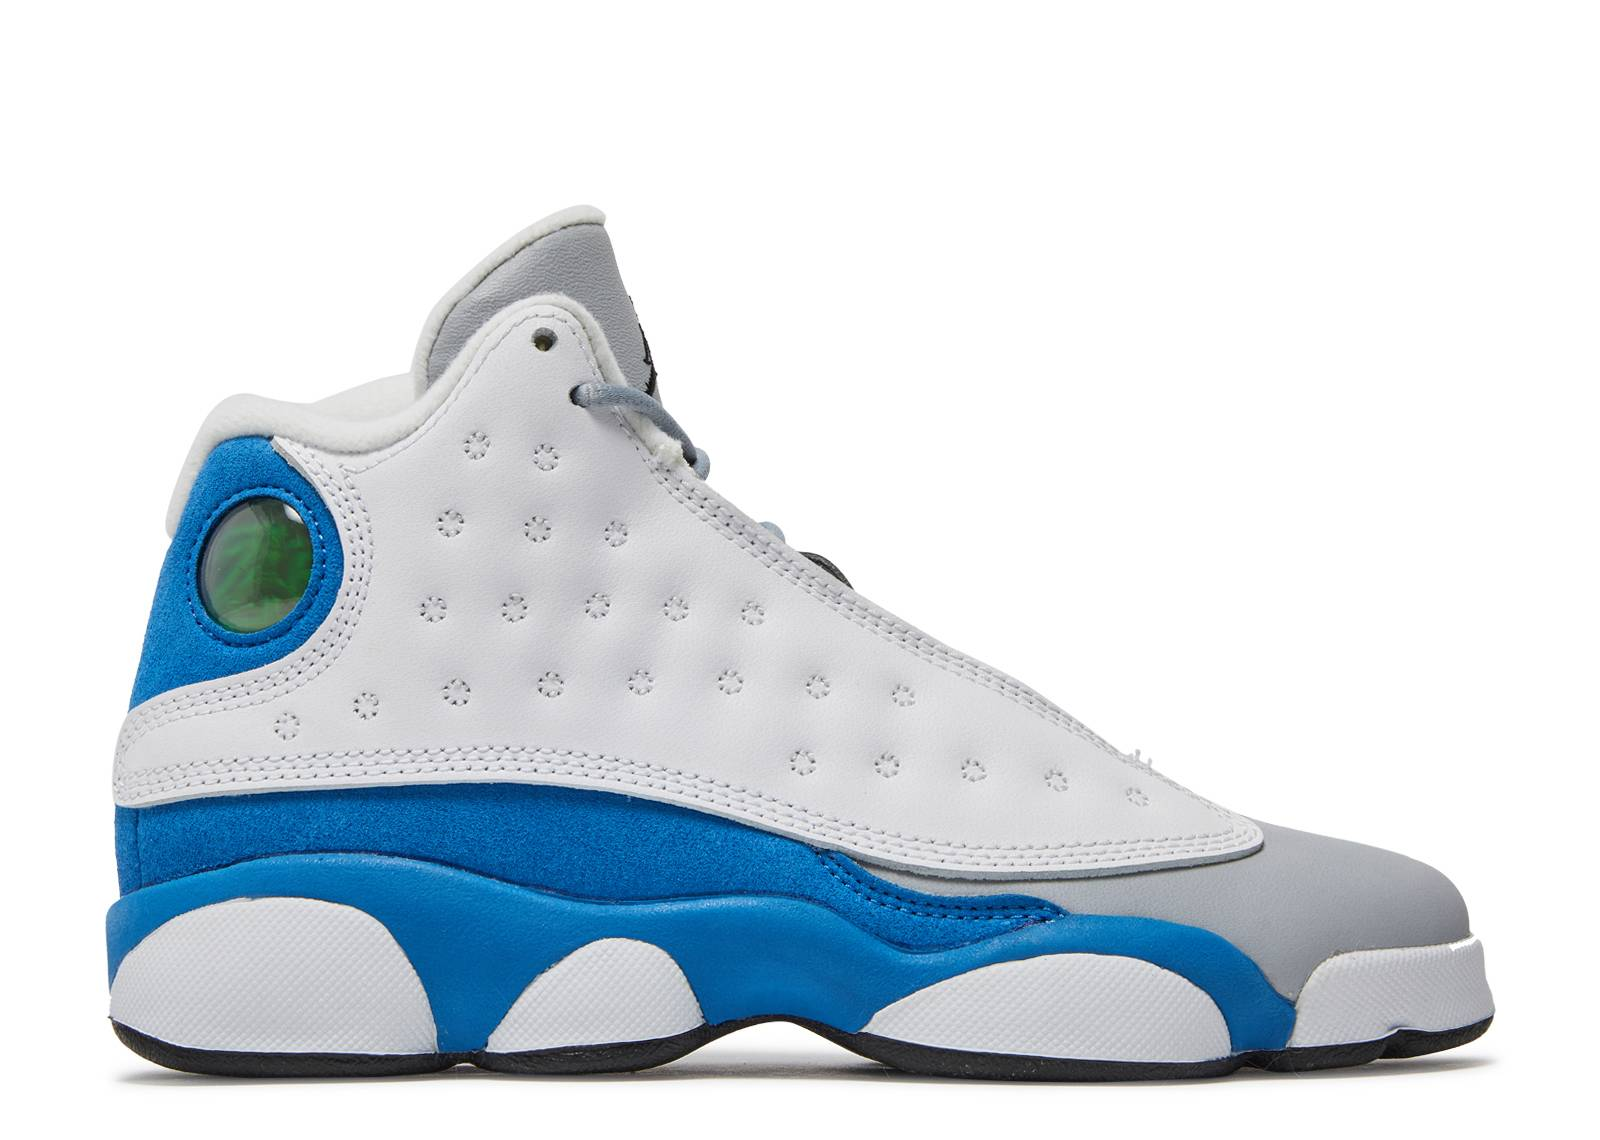 competitive price 9728c 60648 Air Jordan 13 (XIII) Shoes - Nike   Flight Club